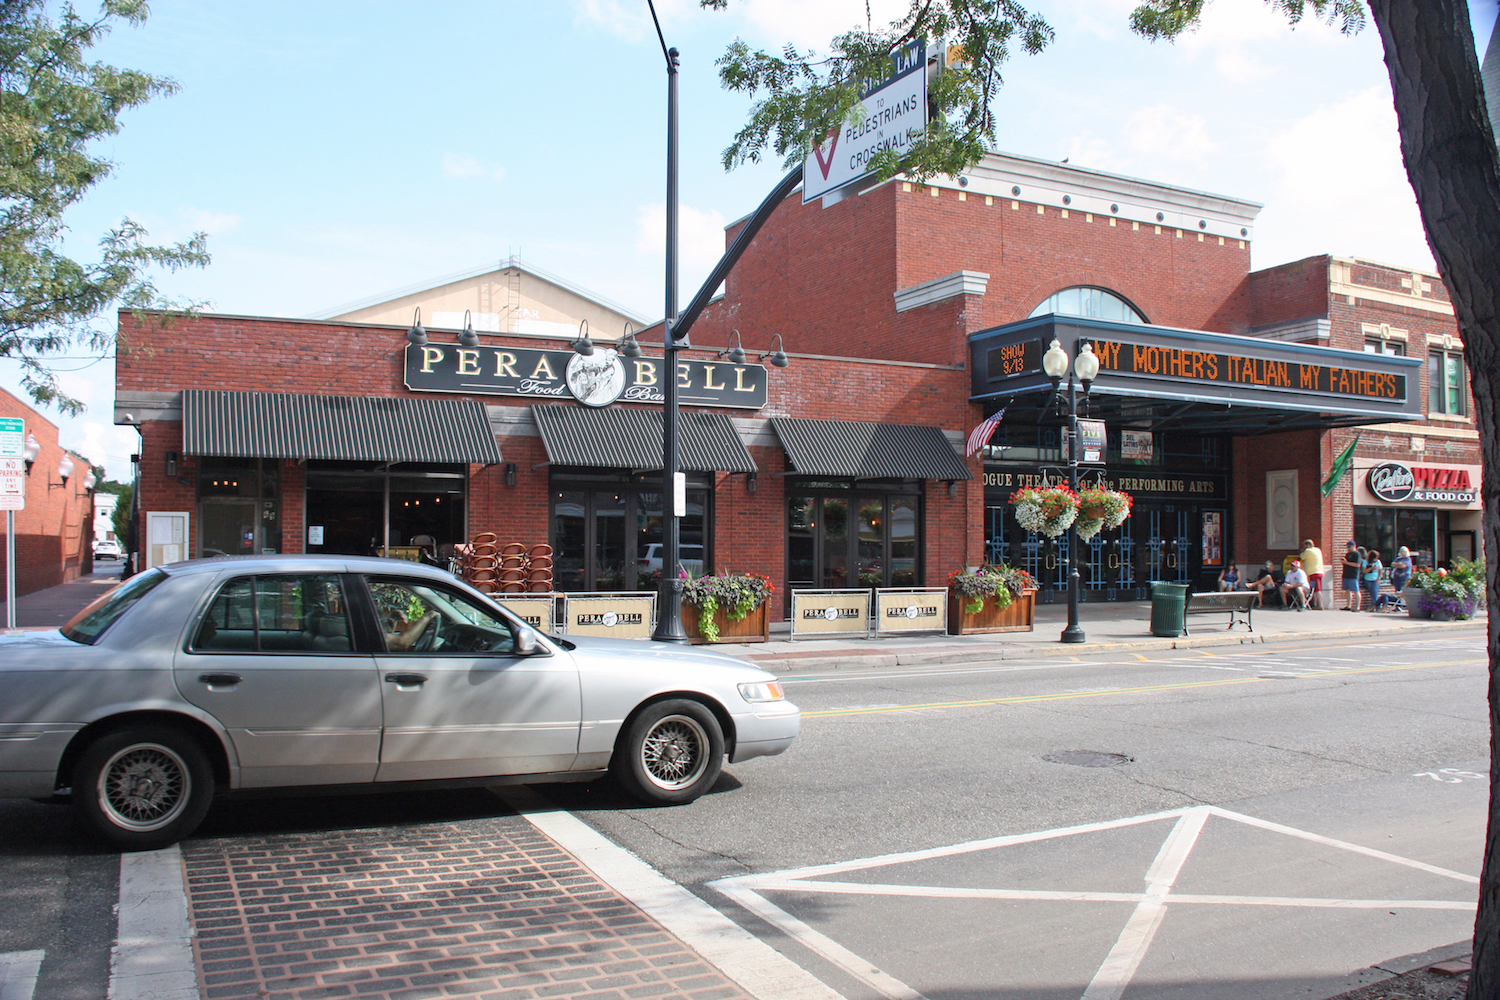 Pera Bell Restaurant and Patchogue Theater